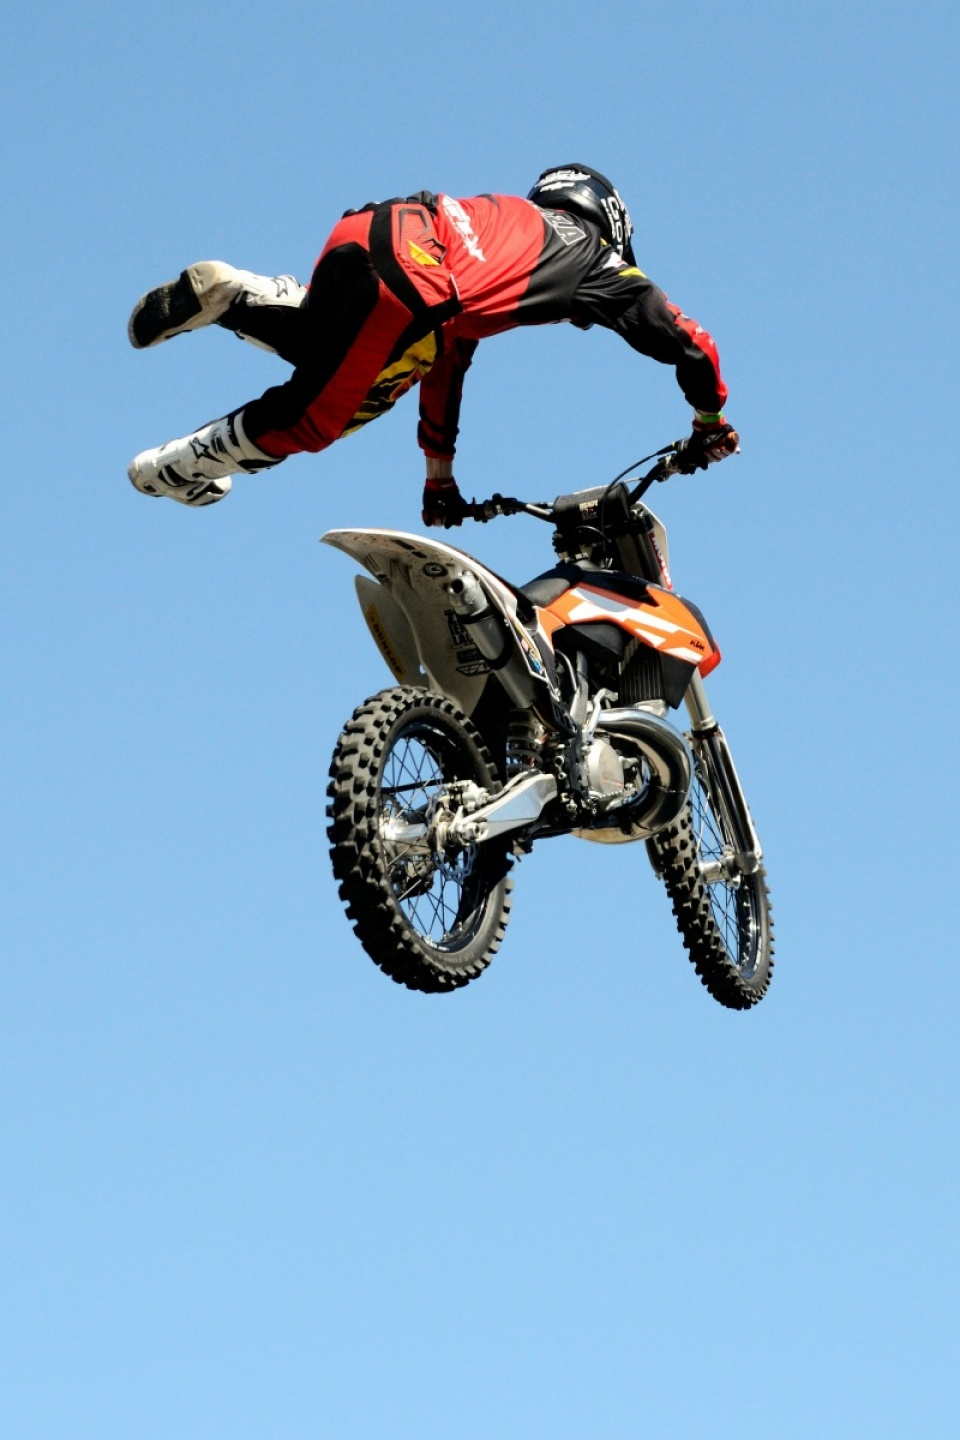 Motorbike in the air